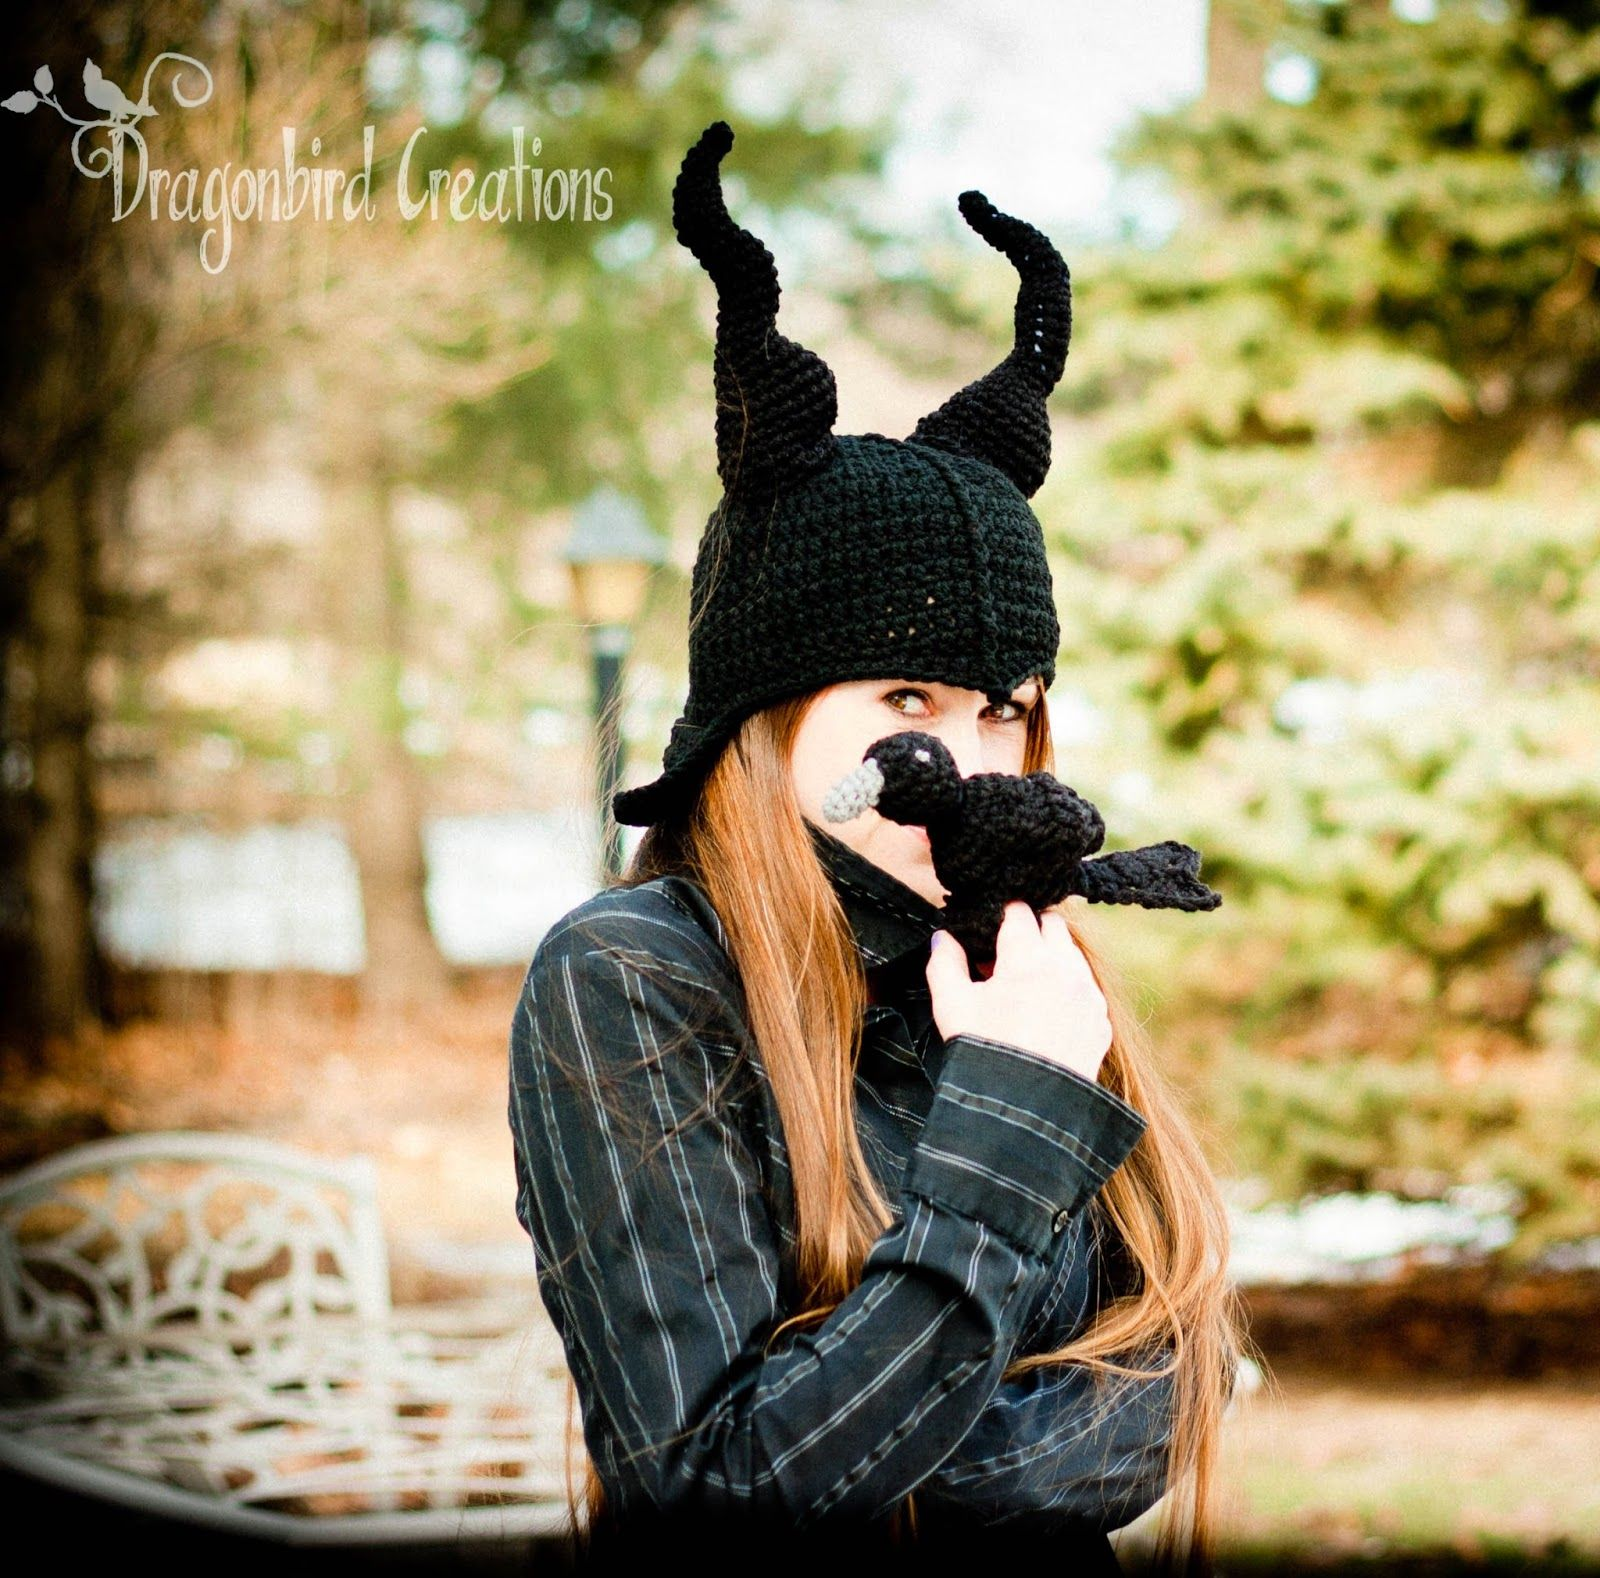 Crochet and knitting adventures in yarn raven and evil lady horn free crochet pattern raven and evil lady horn hat cool craft project for a fancy hat for any fairytale evil queen woodland gothic goddess or dark and bankloansurffo Images